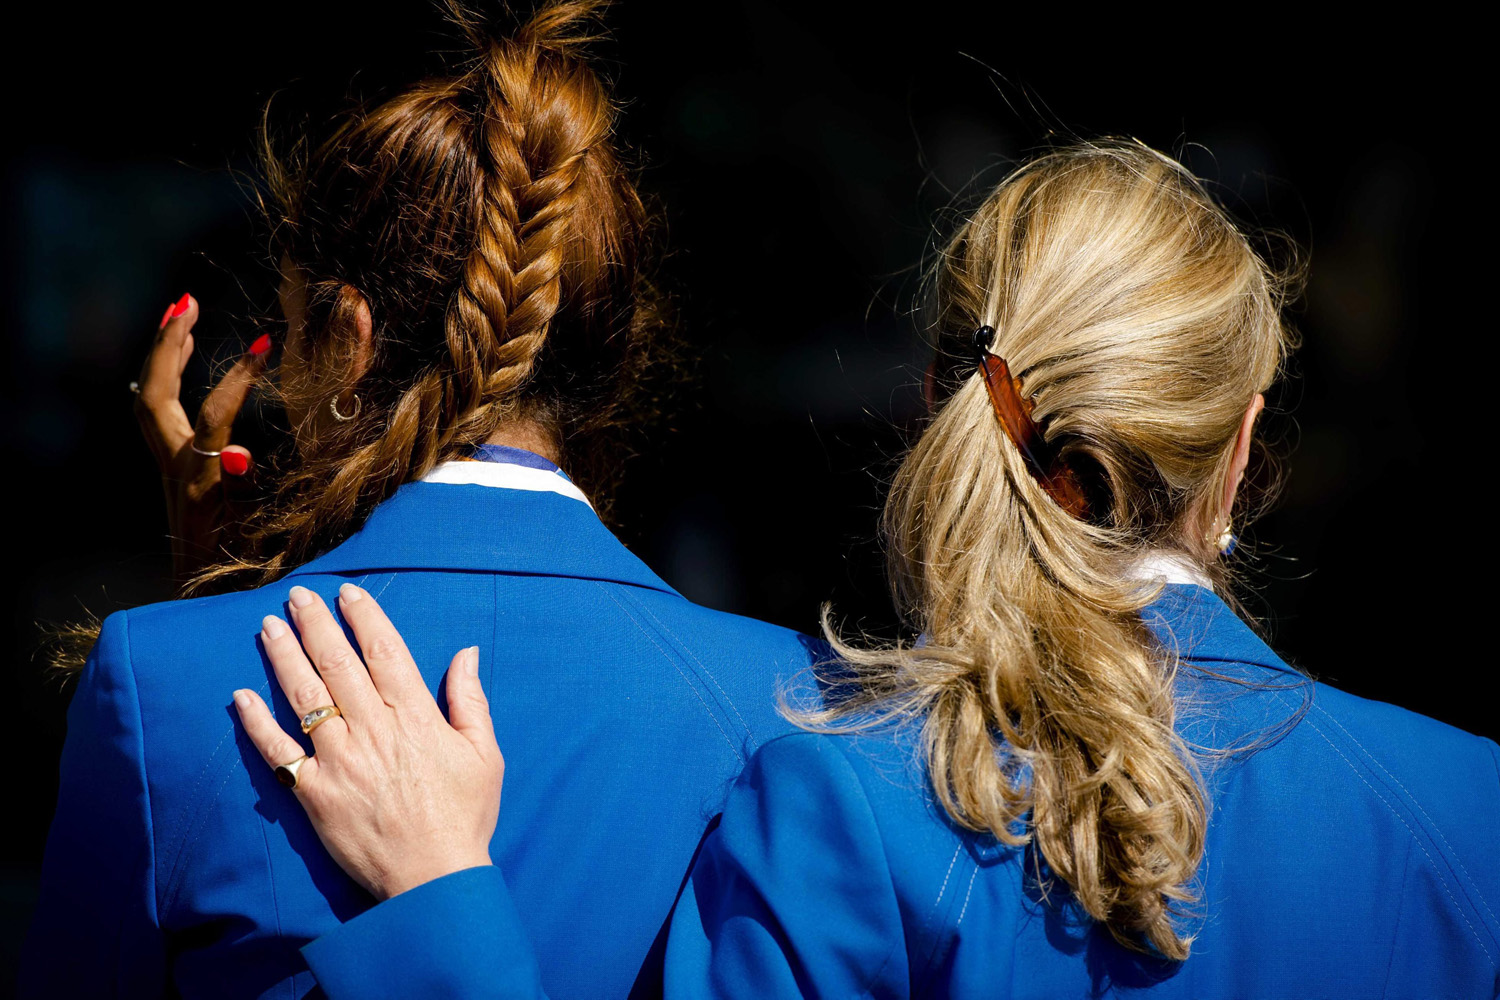 Jul. 23, 2014. Two air hostesses at Schiphol Airport, near Amsterdam, The Netherlands.